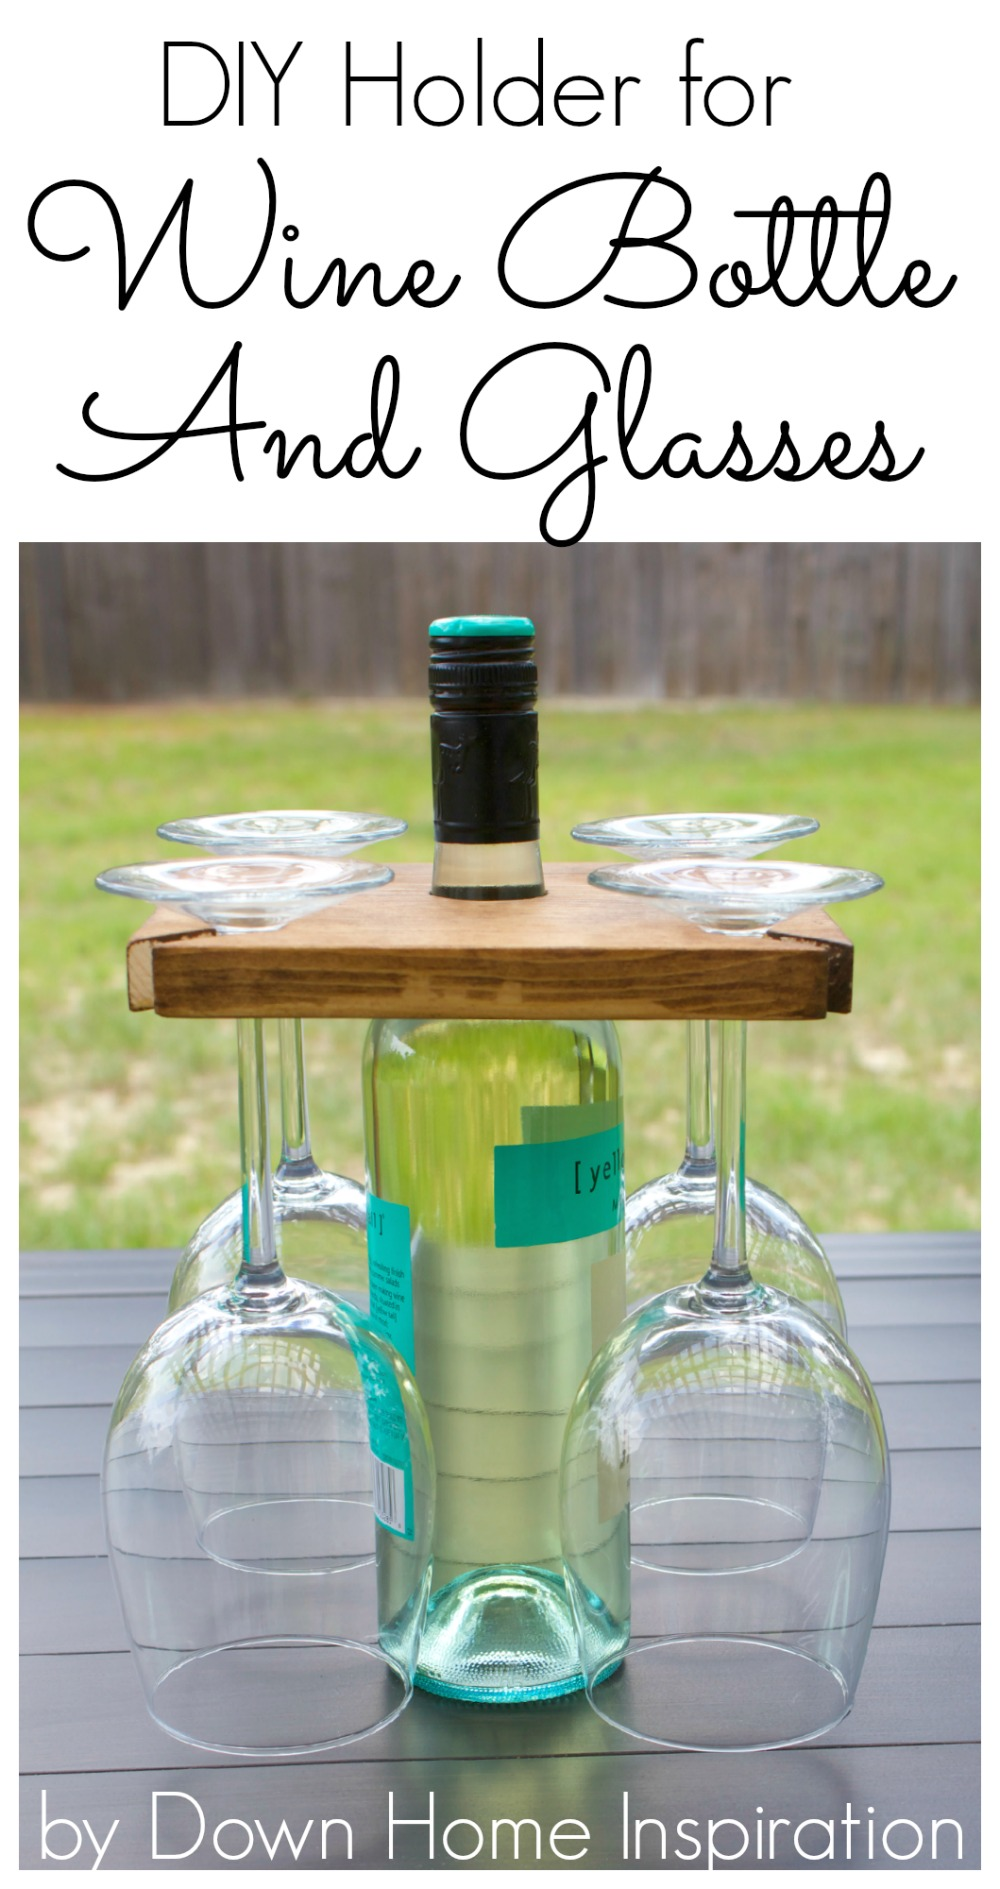 How To Make A Diy Holder For A Wine Bottle And Glasses Down Home